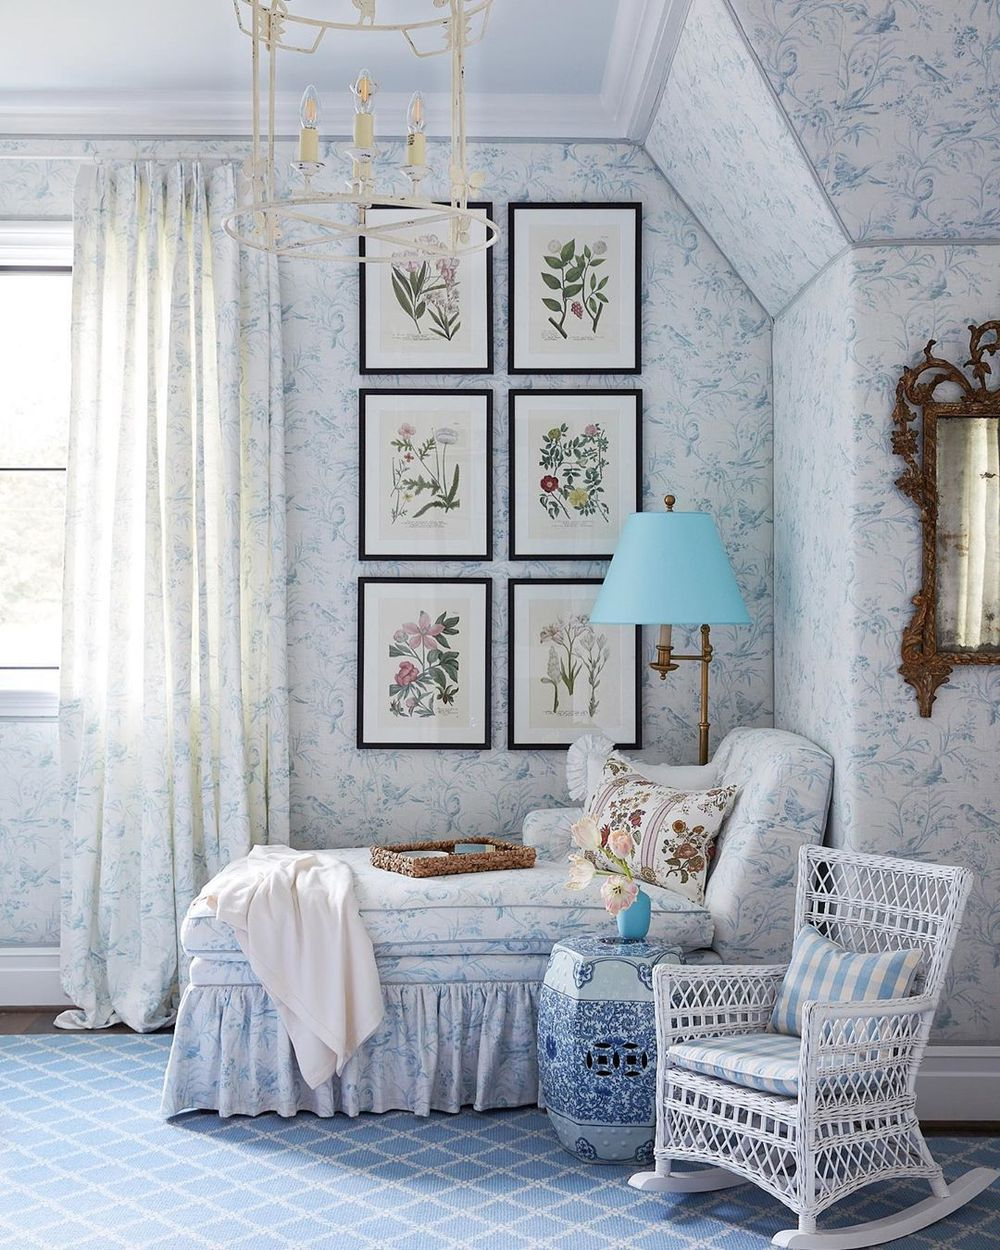 Neo-traditional pattern wallpaper and blue chinoiserie stool via @amylberry